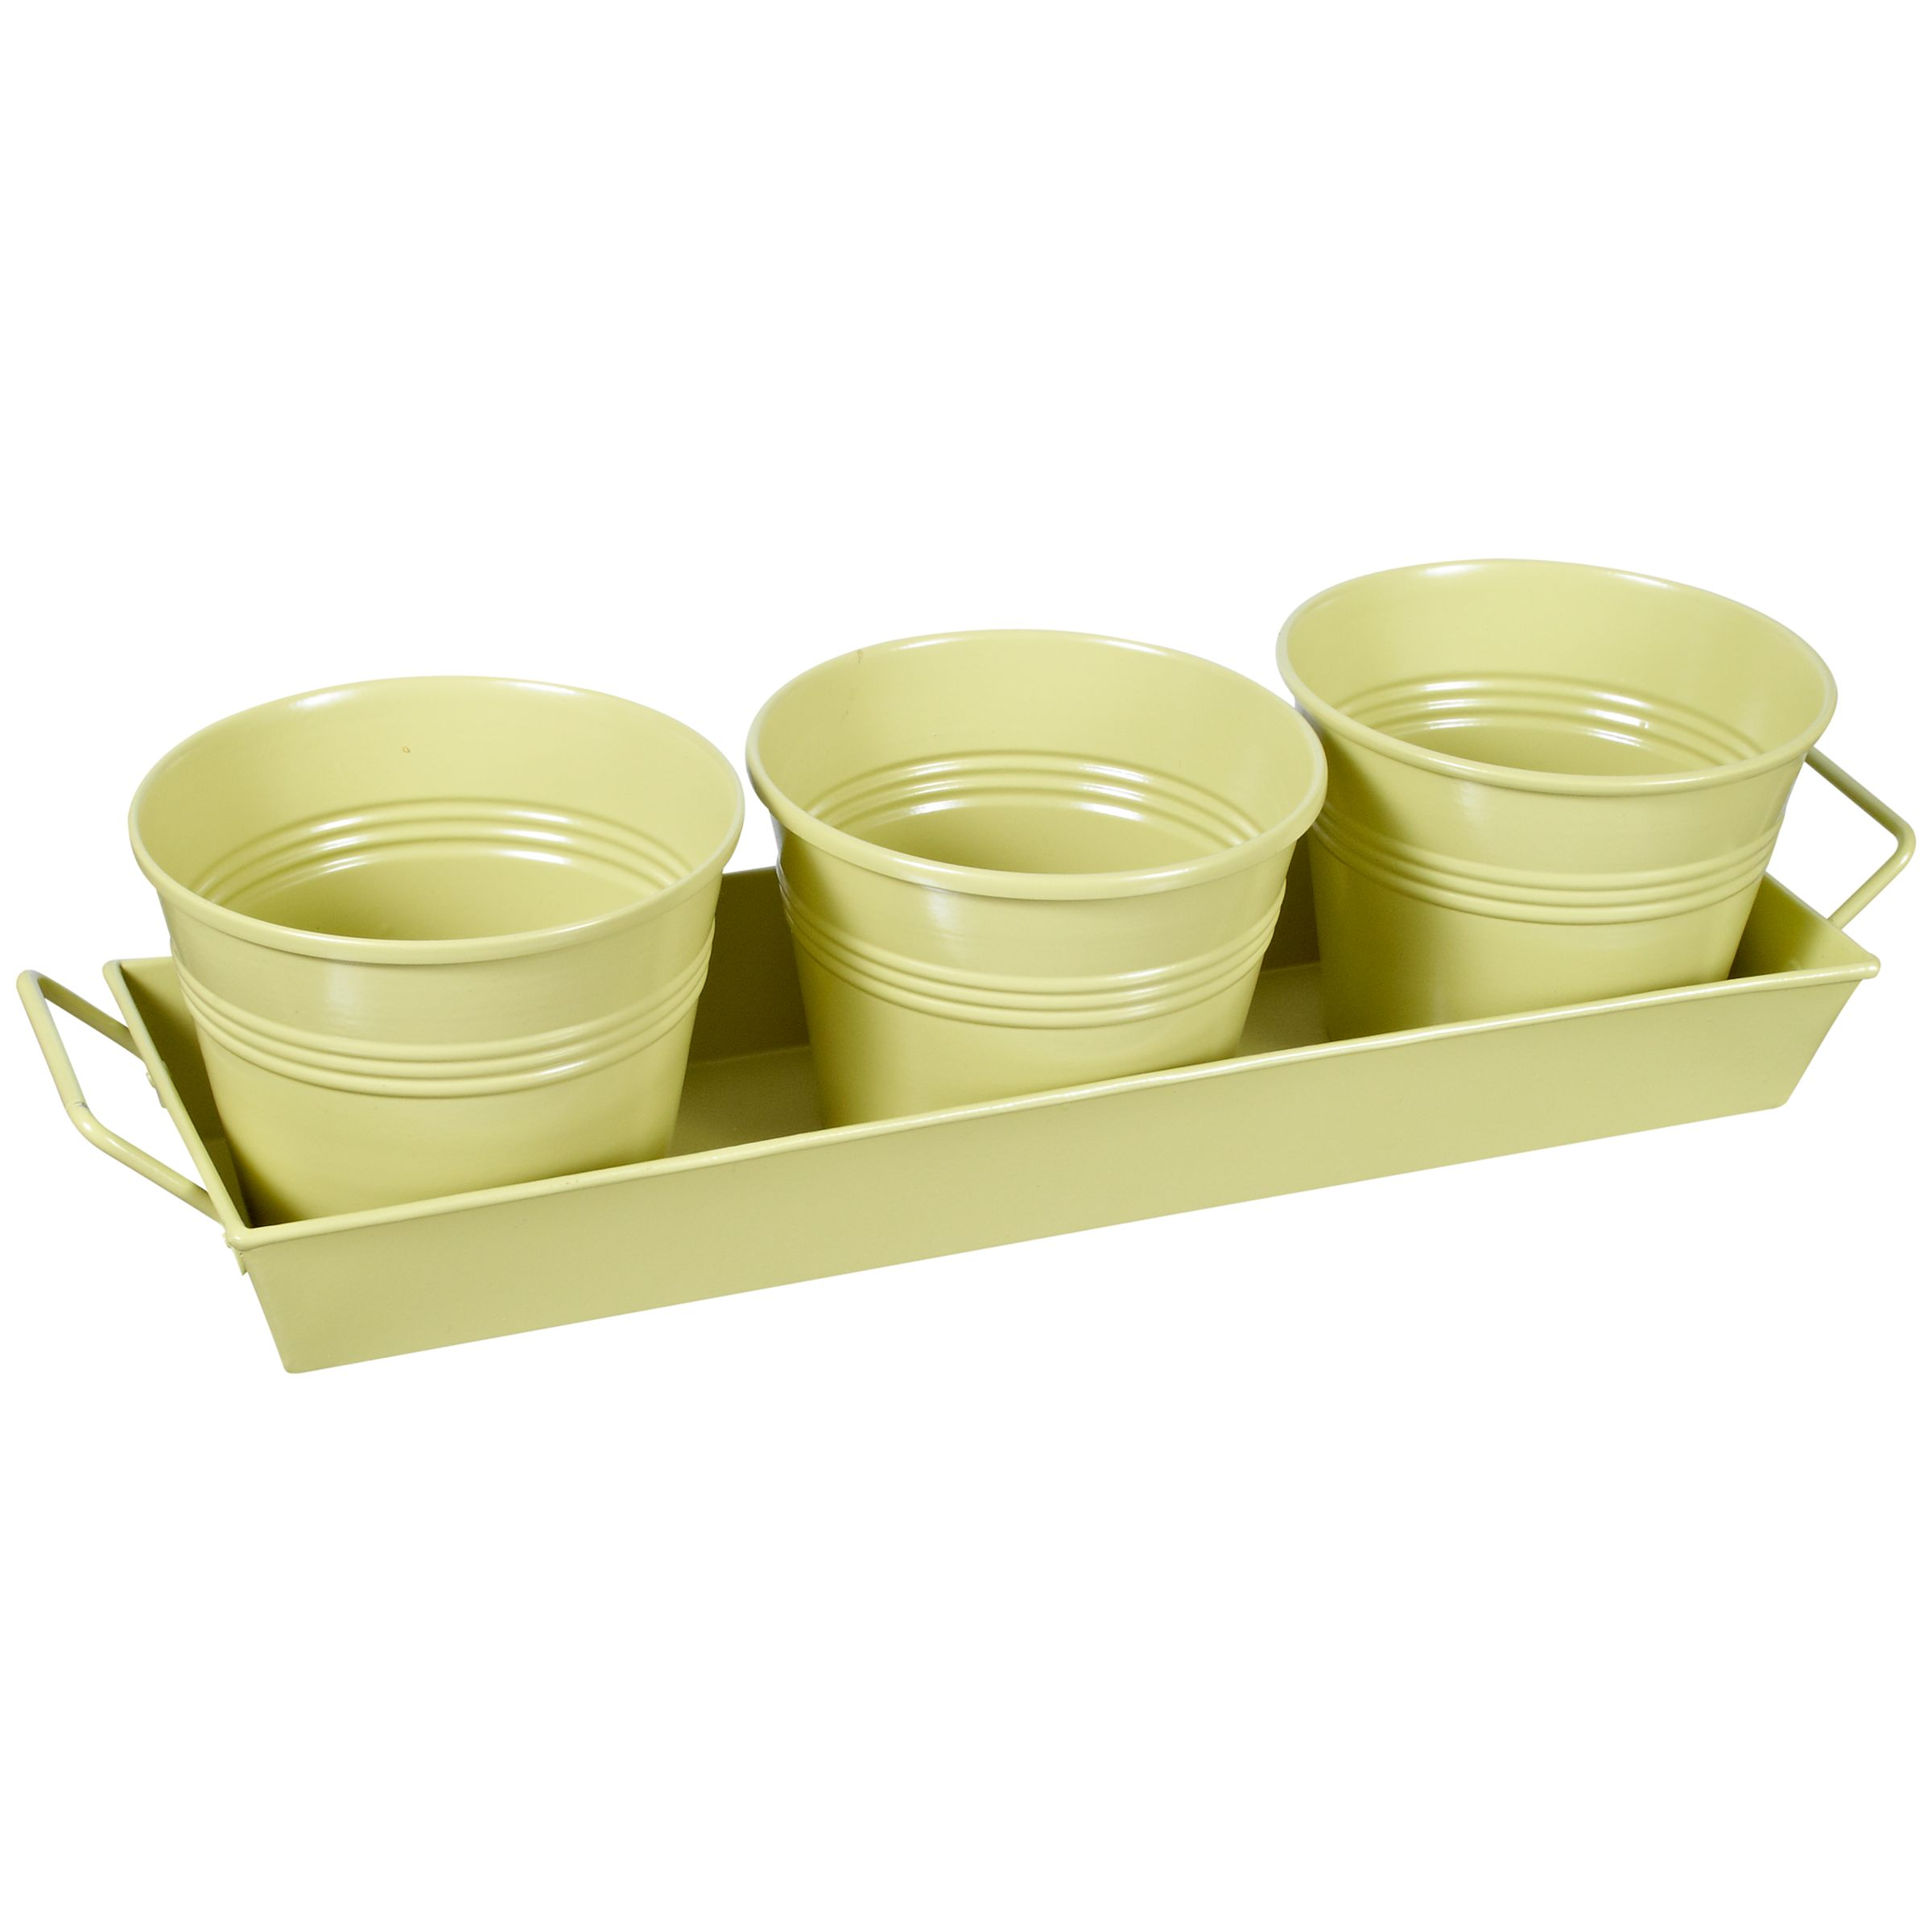 John Lewis Margery Plant Pots and Tray